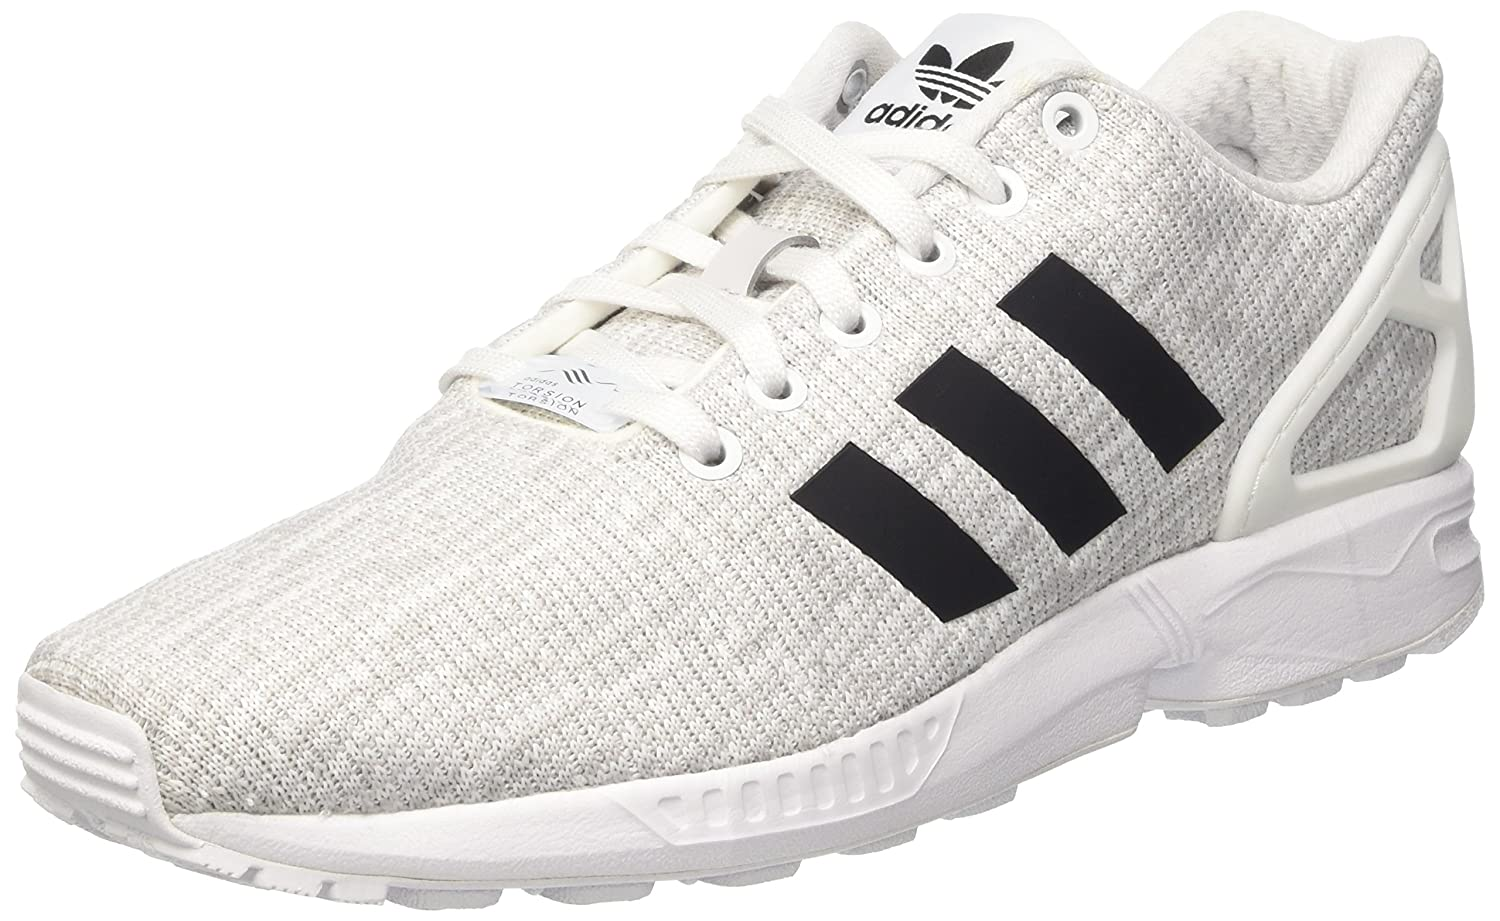 super popular fd481 7c054 adidas ZX Flux C, Chaussures de Gymnastique Mixte Enfant, Multicolore (Core  Black/